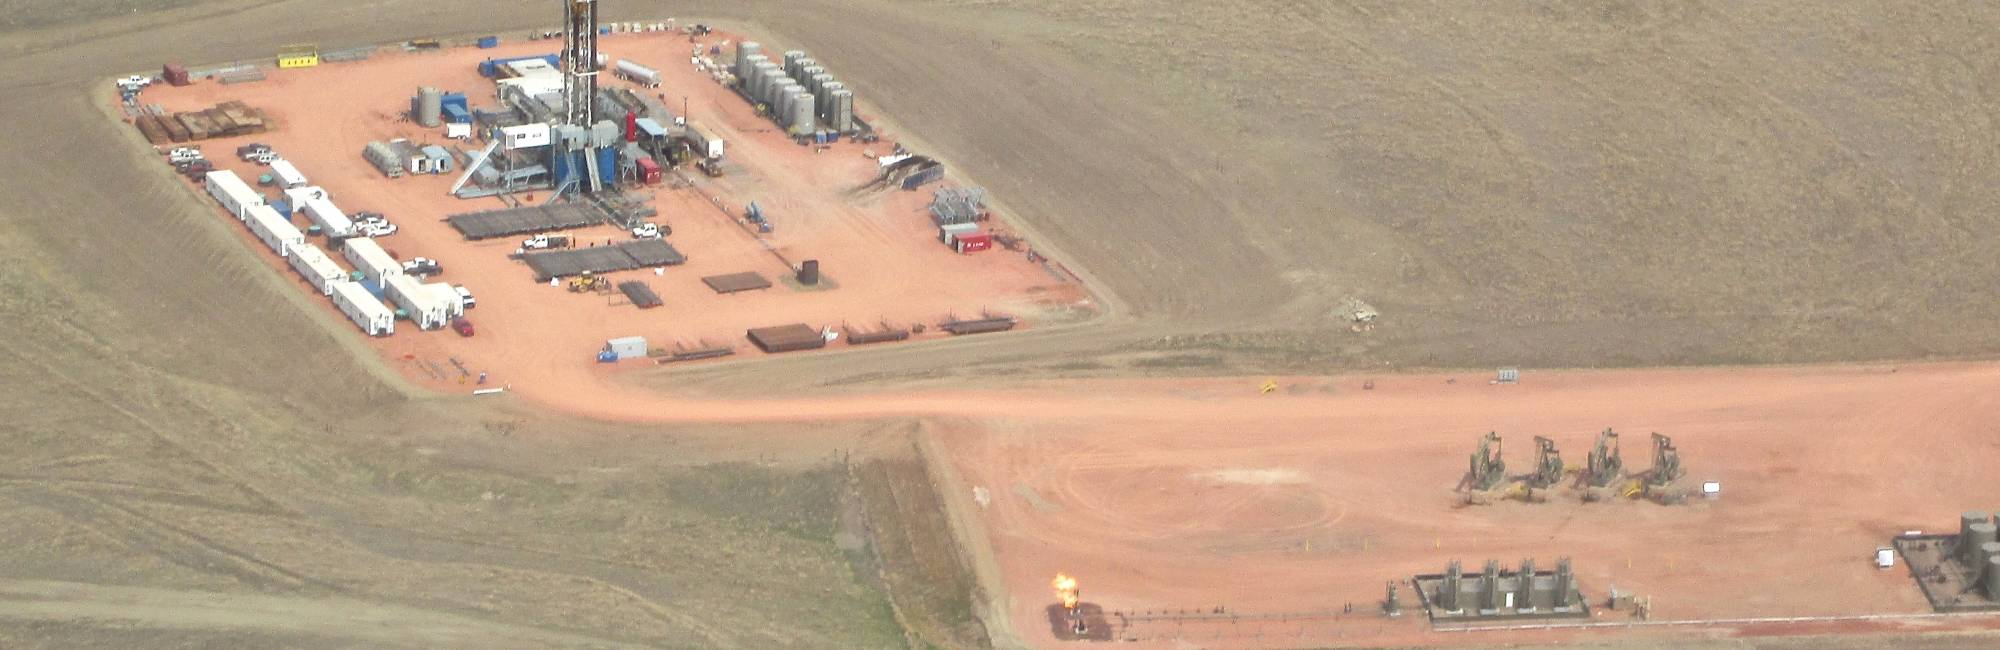 drill rig and tons of equipment on the ground in north dakota